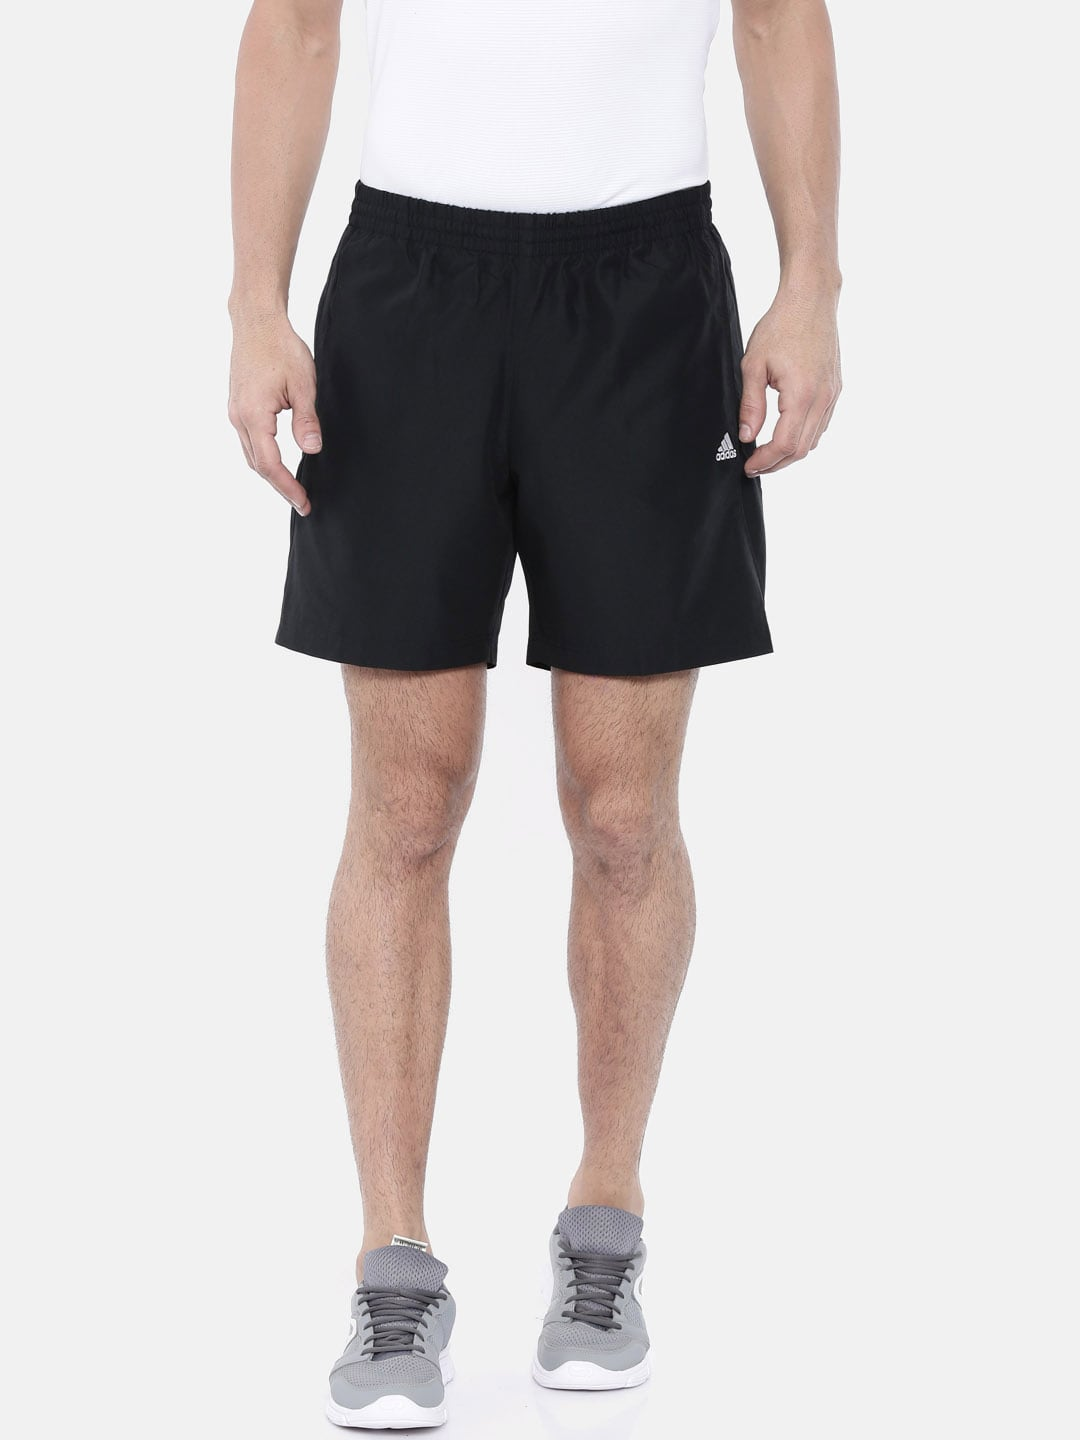 new product 1d124 7ecbe Men Adidas Shorts - Buy Men Adidas Shorts online in India